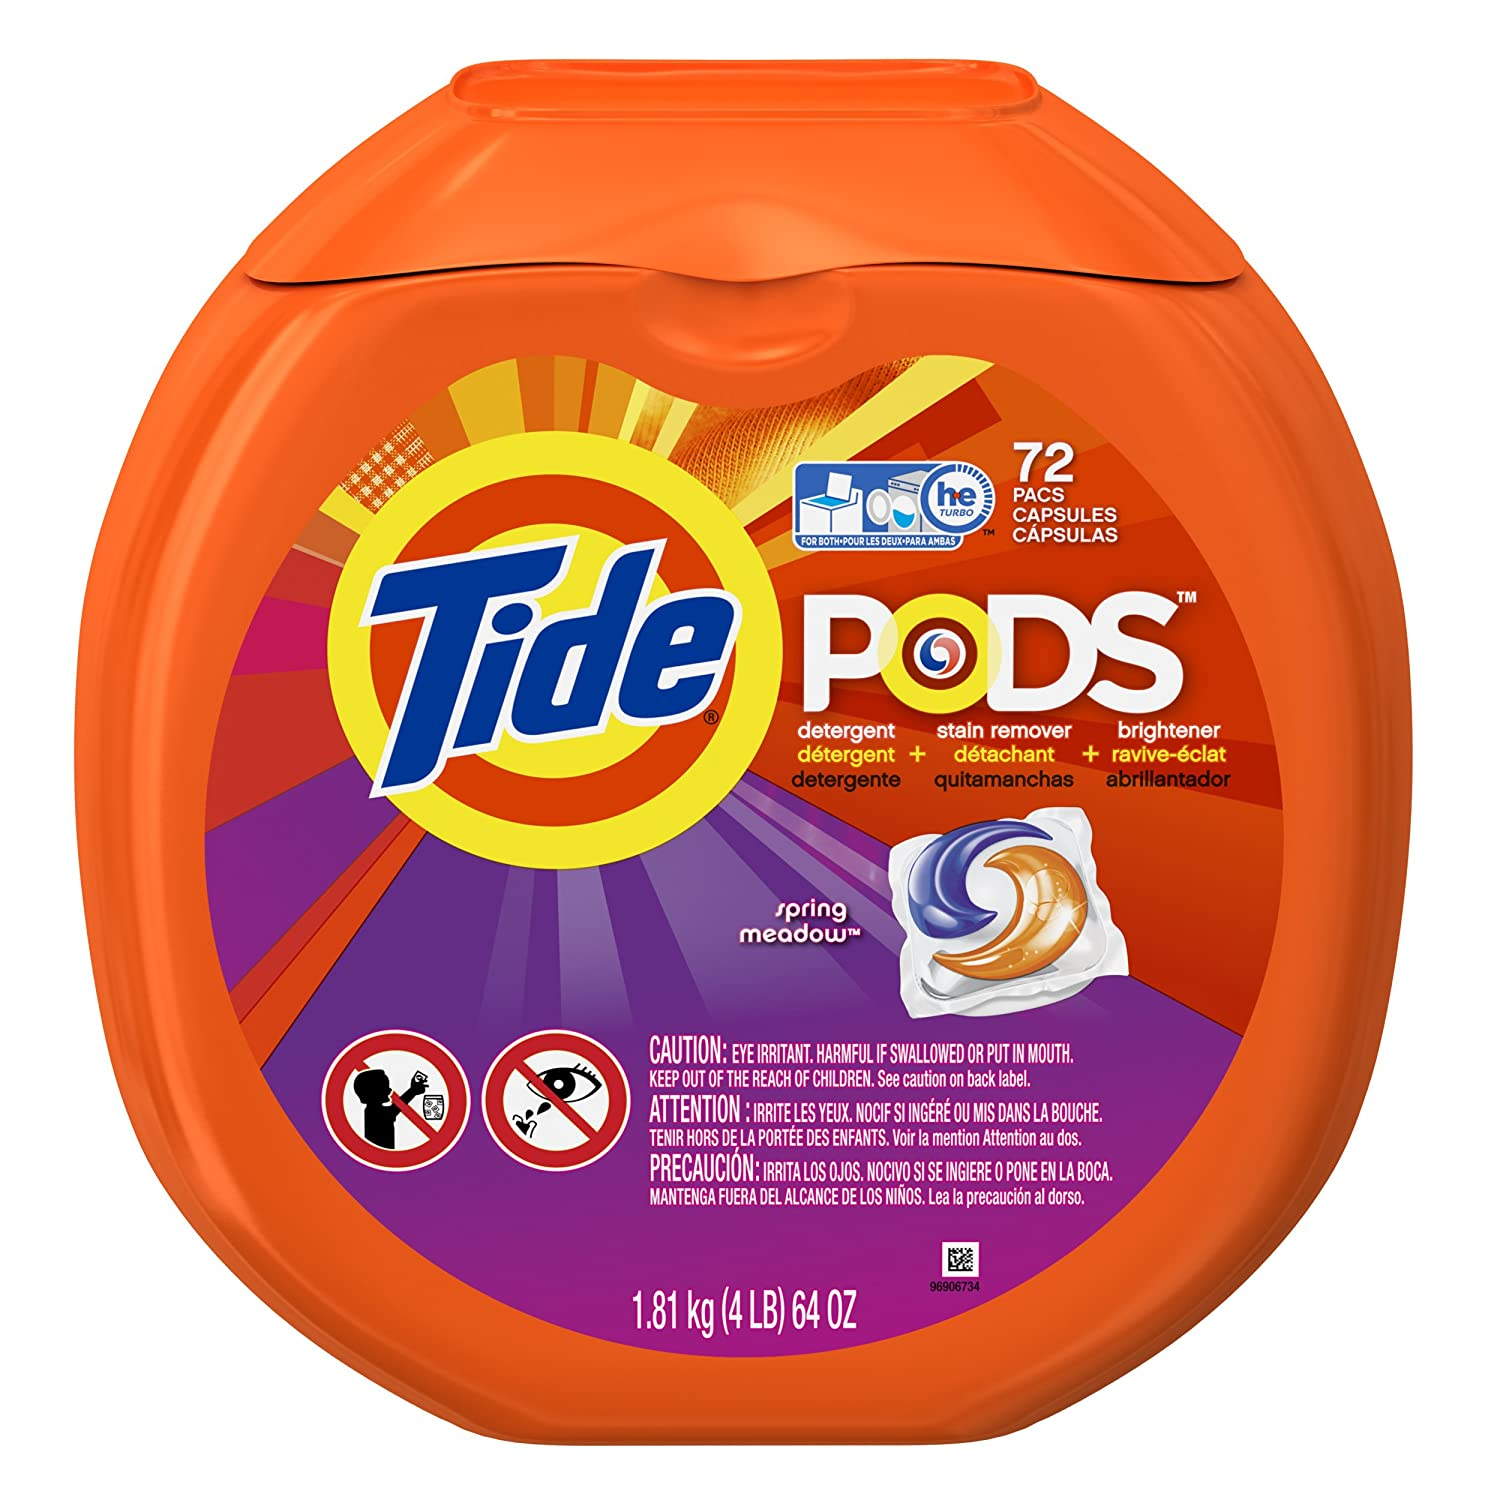 PGC50978 - Tide Pods, Spring Meadow, 72 Per Pack, 4 per Case by Procter And Gamble B00BTMXOAQ